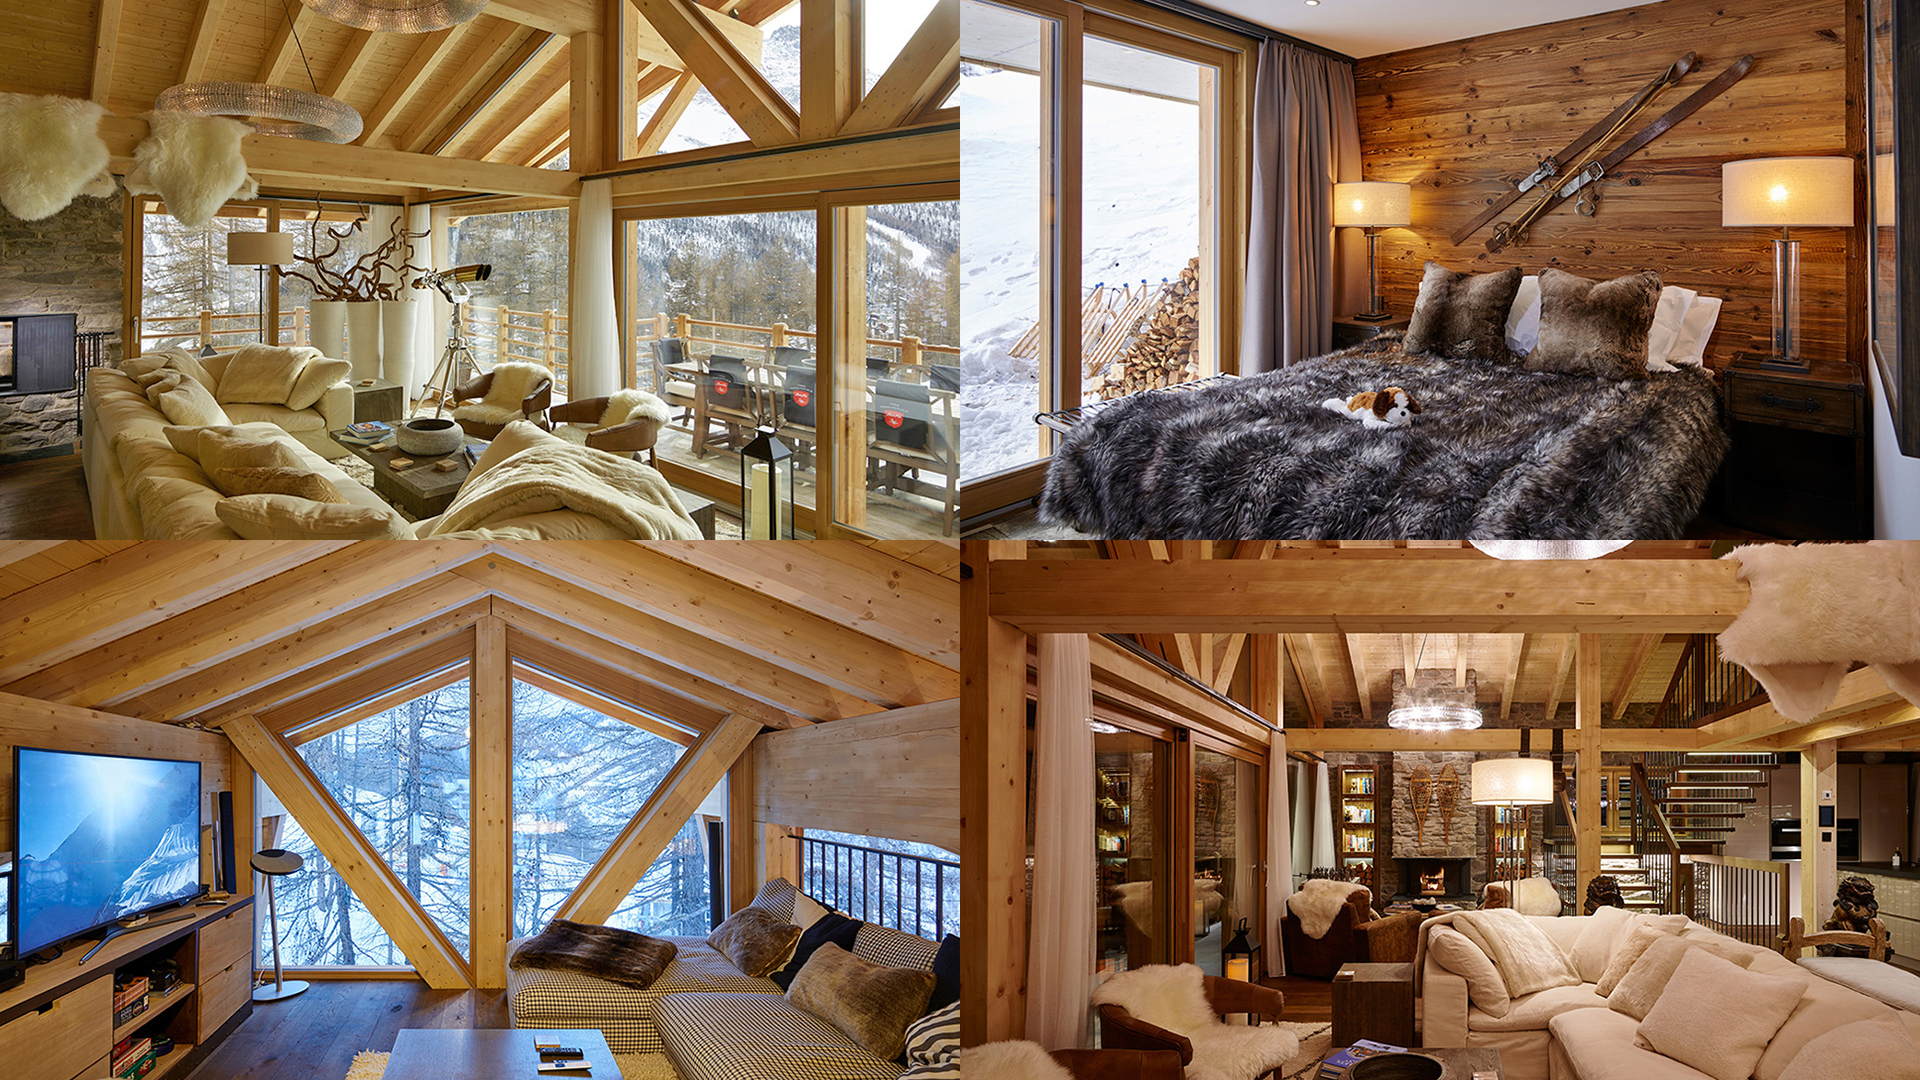 Chalet Simon Chalet, Switzerland